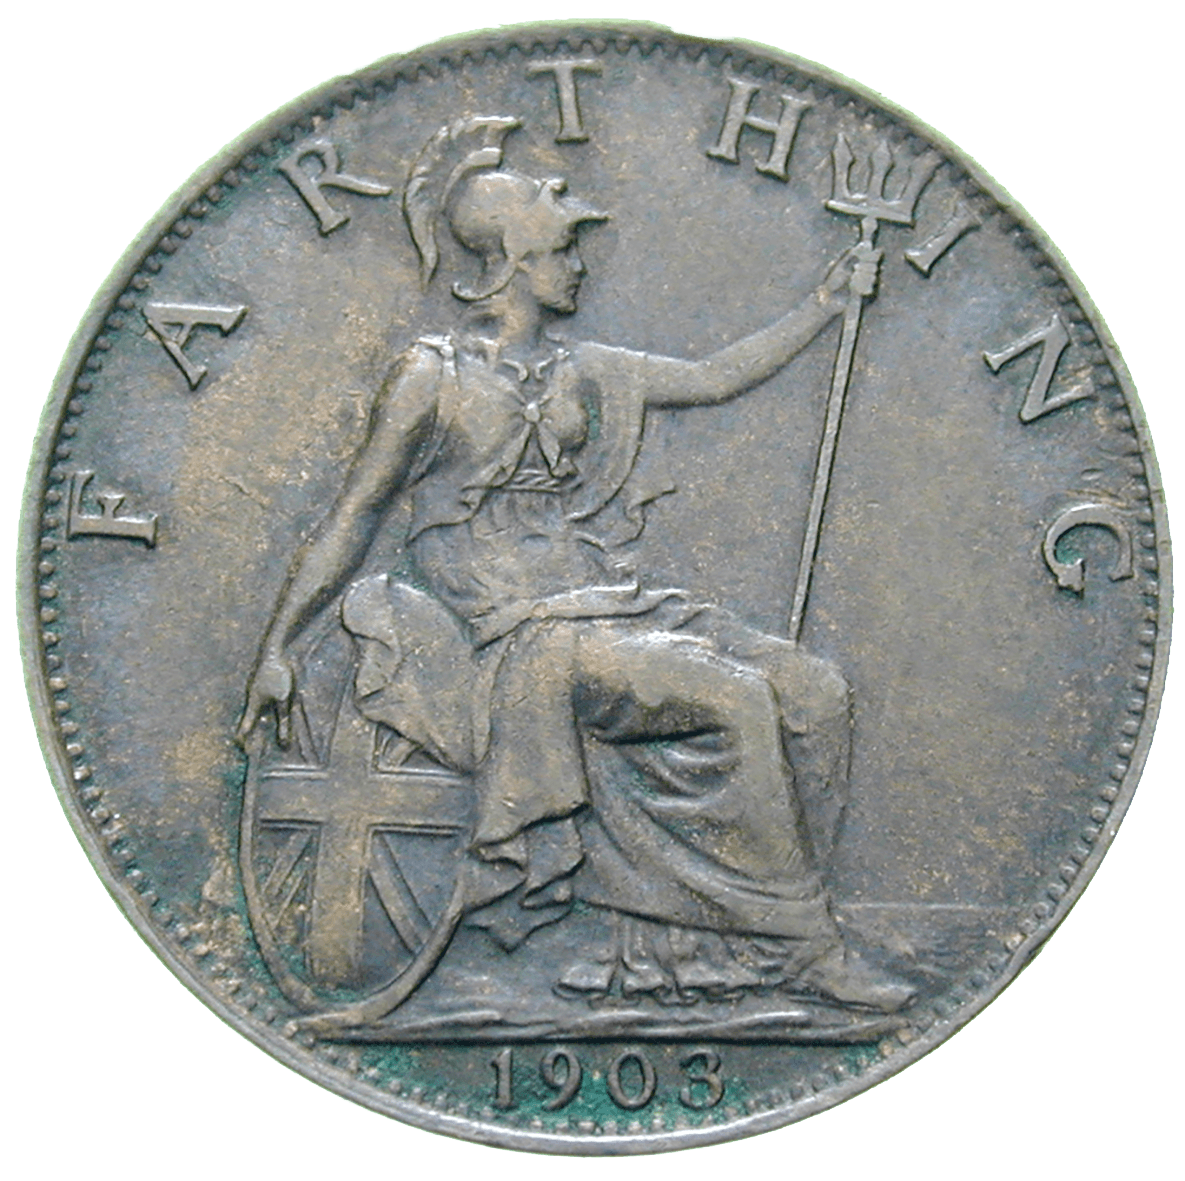 United Kingdom of Great Britain, Edward VII, Farthing 1903 (reverse)